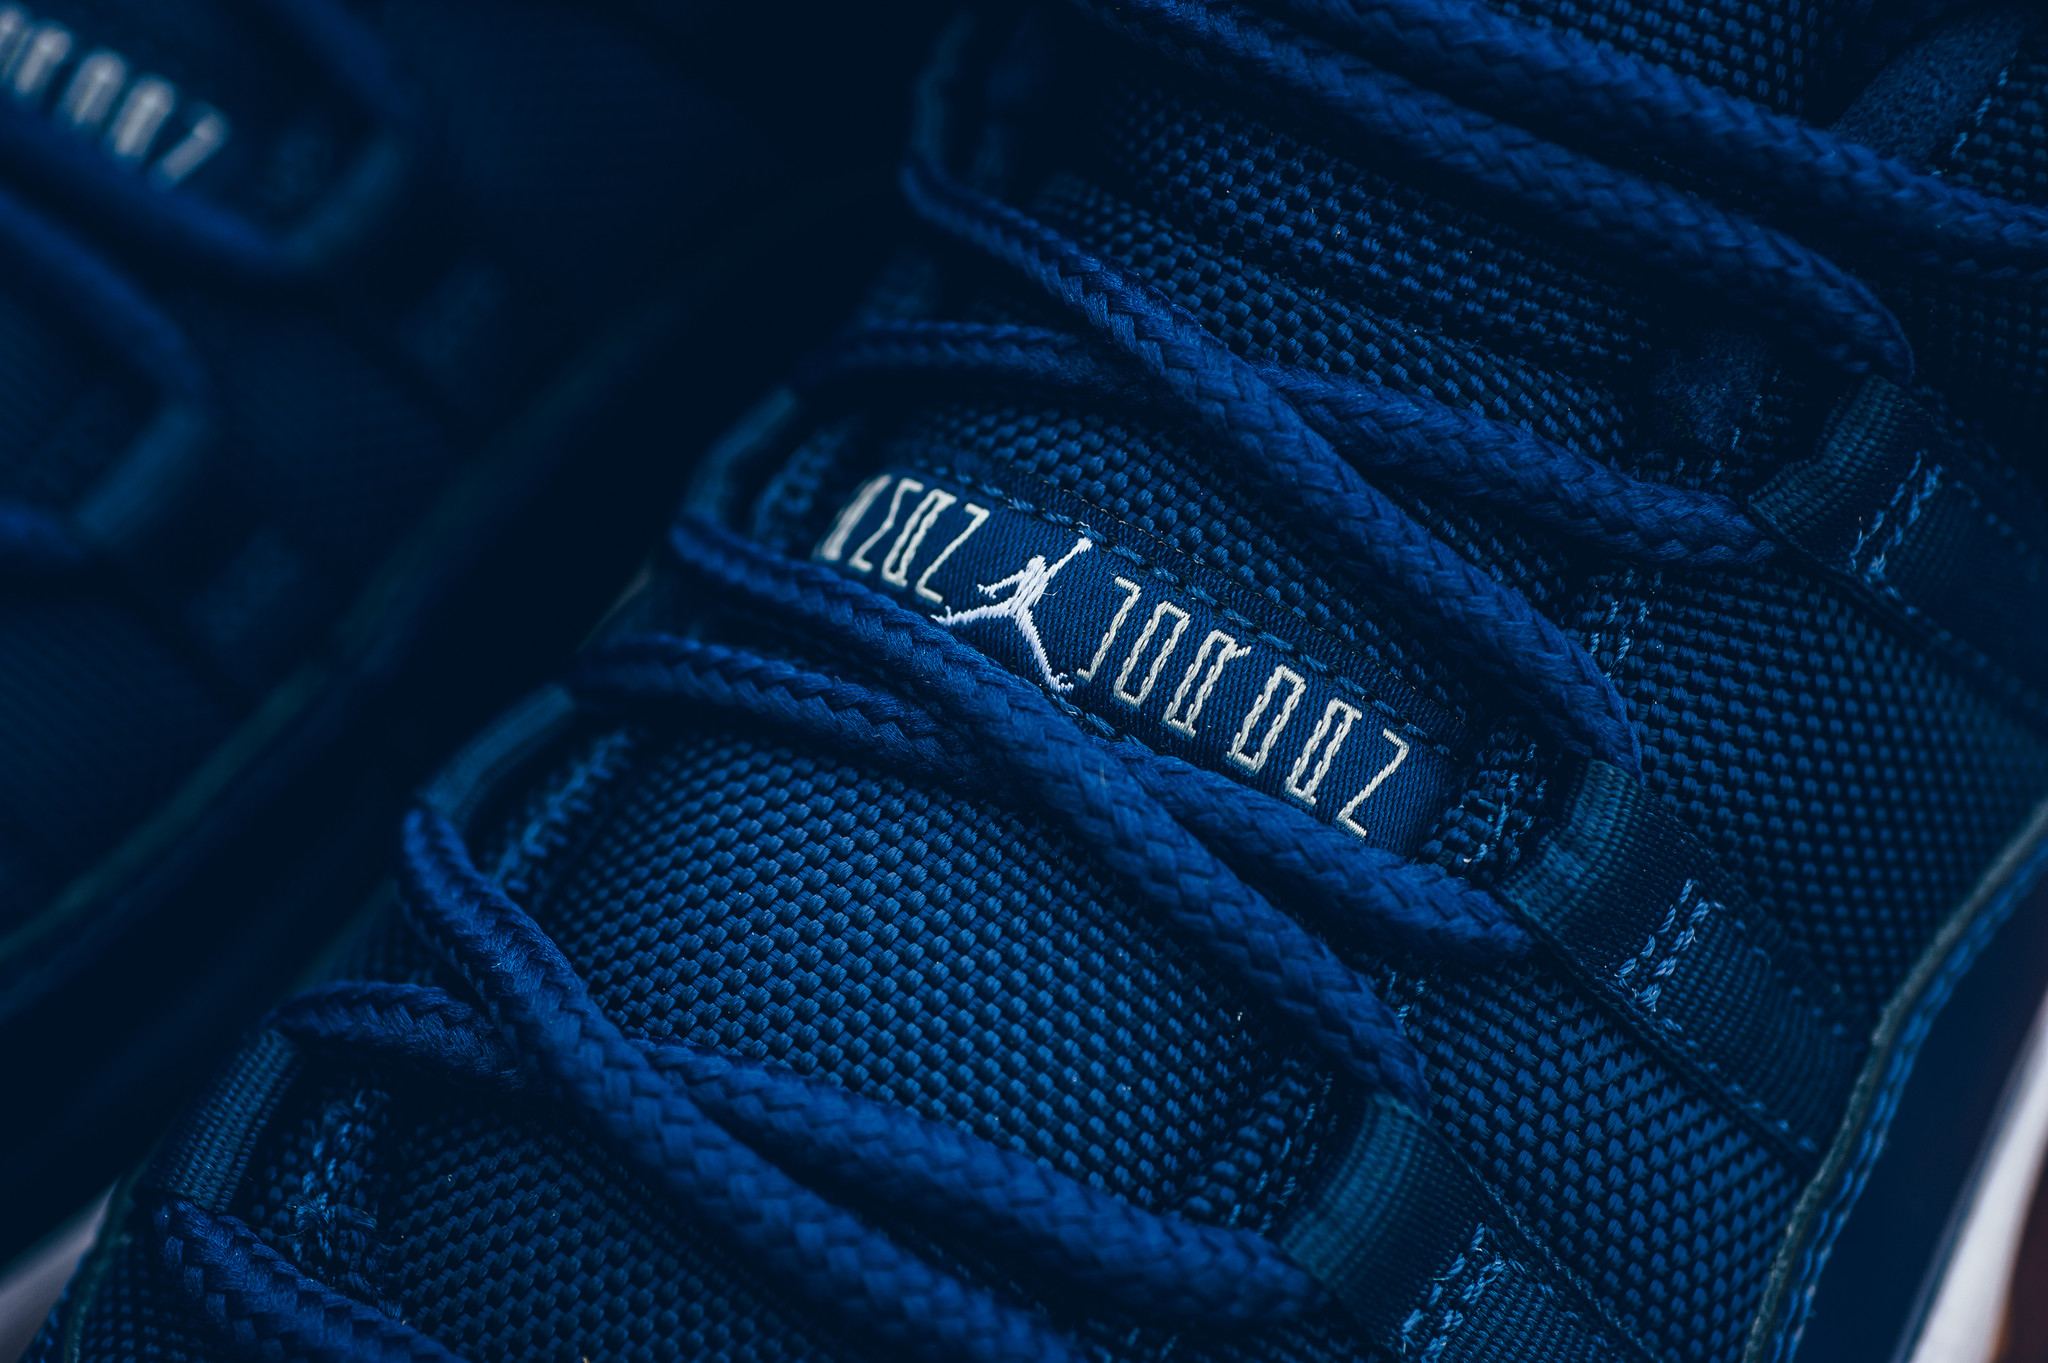 bd8b562af0c Air Jordan XI Retro Low Midnight Navy - New Images - Air 23 - Air ...